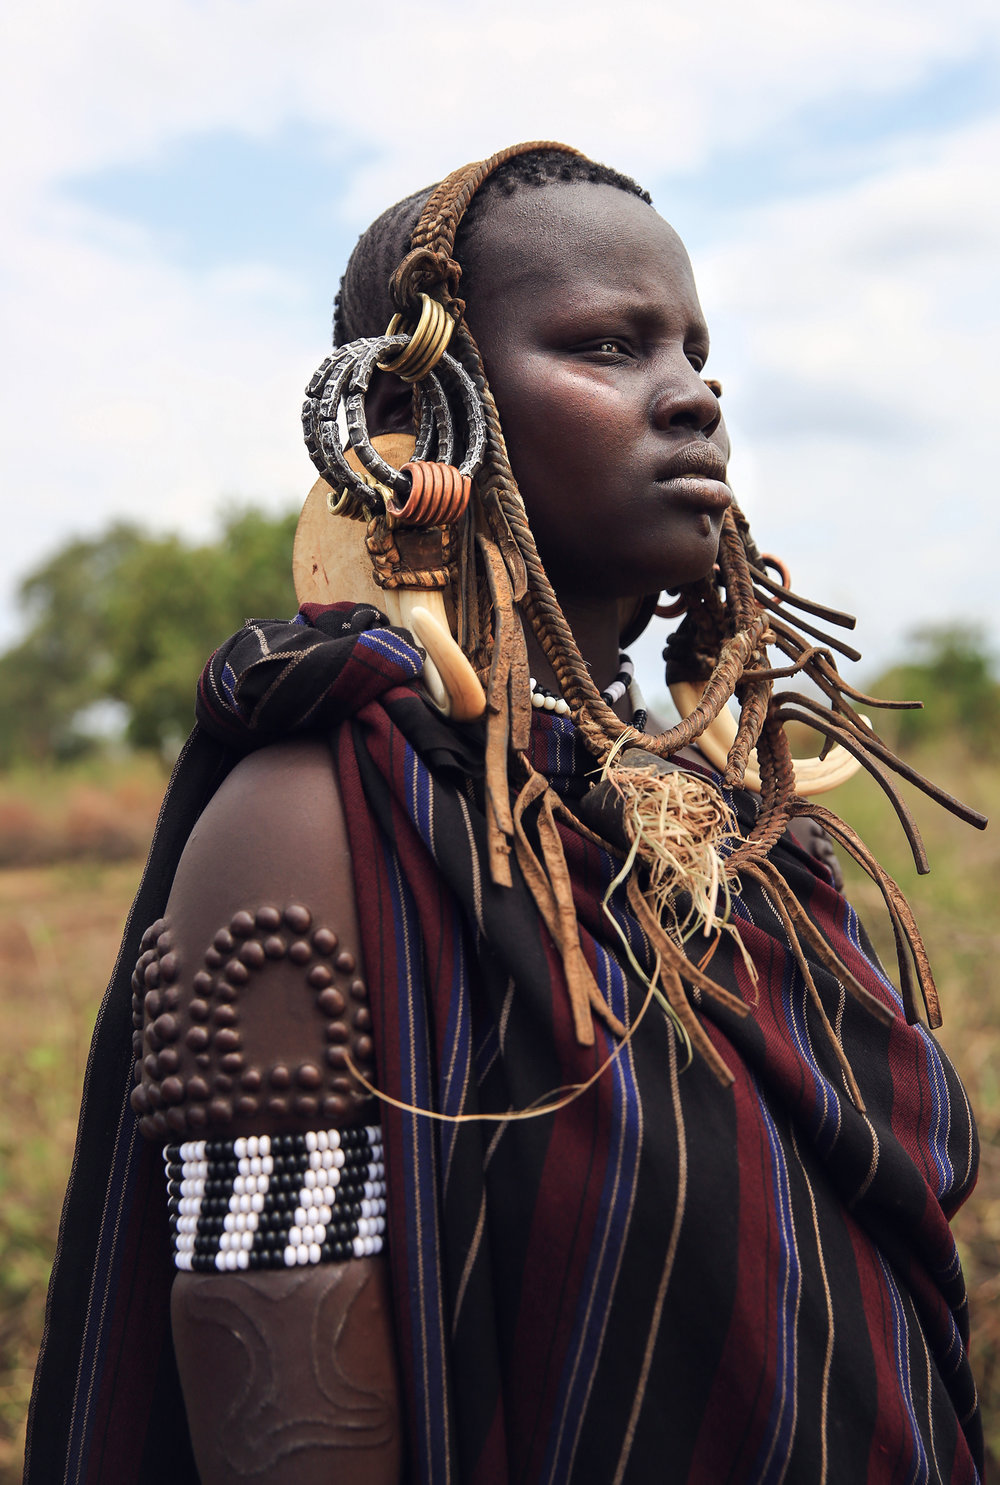 Mursi women are considered beautiful if they have a big lip plate and scarifications. Piercing and lip plates are a strong part of the culture. These traditional adornments are worn by almost all of the adult women. When a Mun (as they call themselves) becomes engaged to be married, usually around 14 or 15, she disappears from village life to live in her family hut. The gap between her front lip and the flesh below is pierced and gradually stretched. In the beginning a hole is made in the lip with a wooden stick. The stretching continues as successively bigger discs of clay or wood are accommodated by the changed lip. Generally the two lower front teeth are pulled or knocked out to aid in the process. The final size of the plate helps to determine her beauty & bride price.